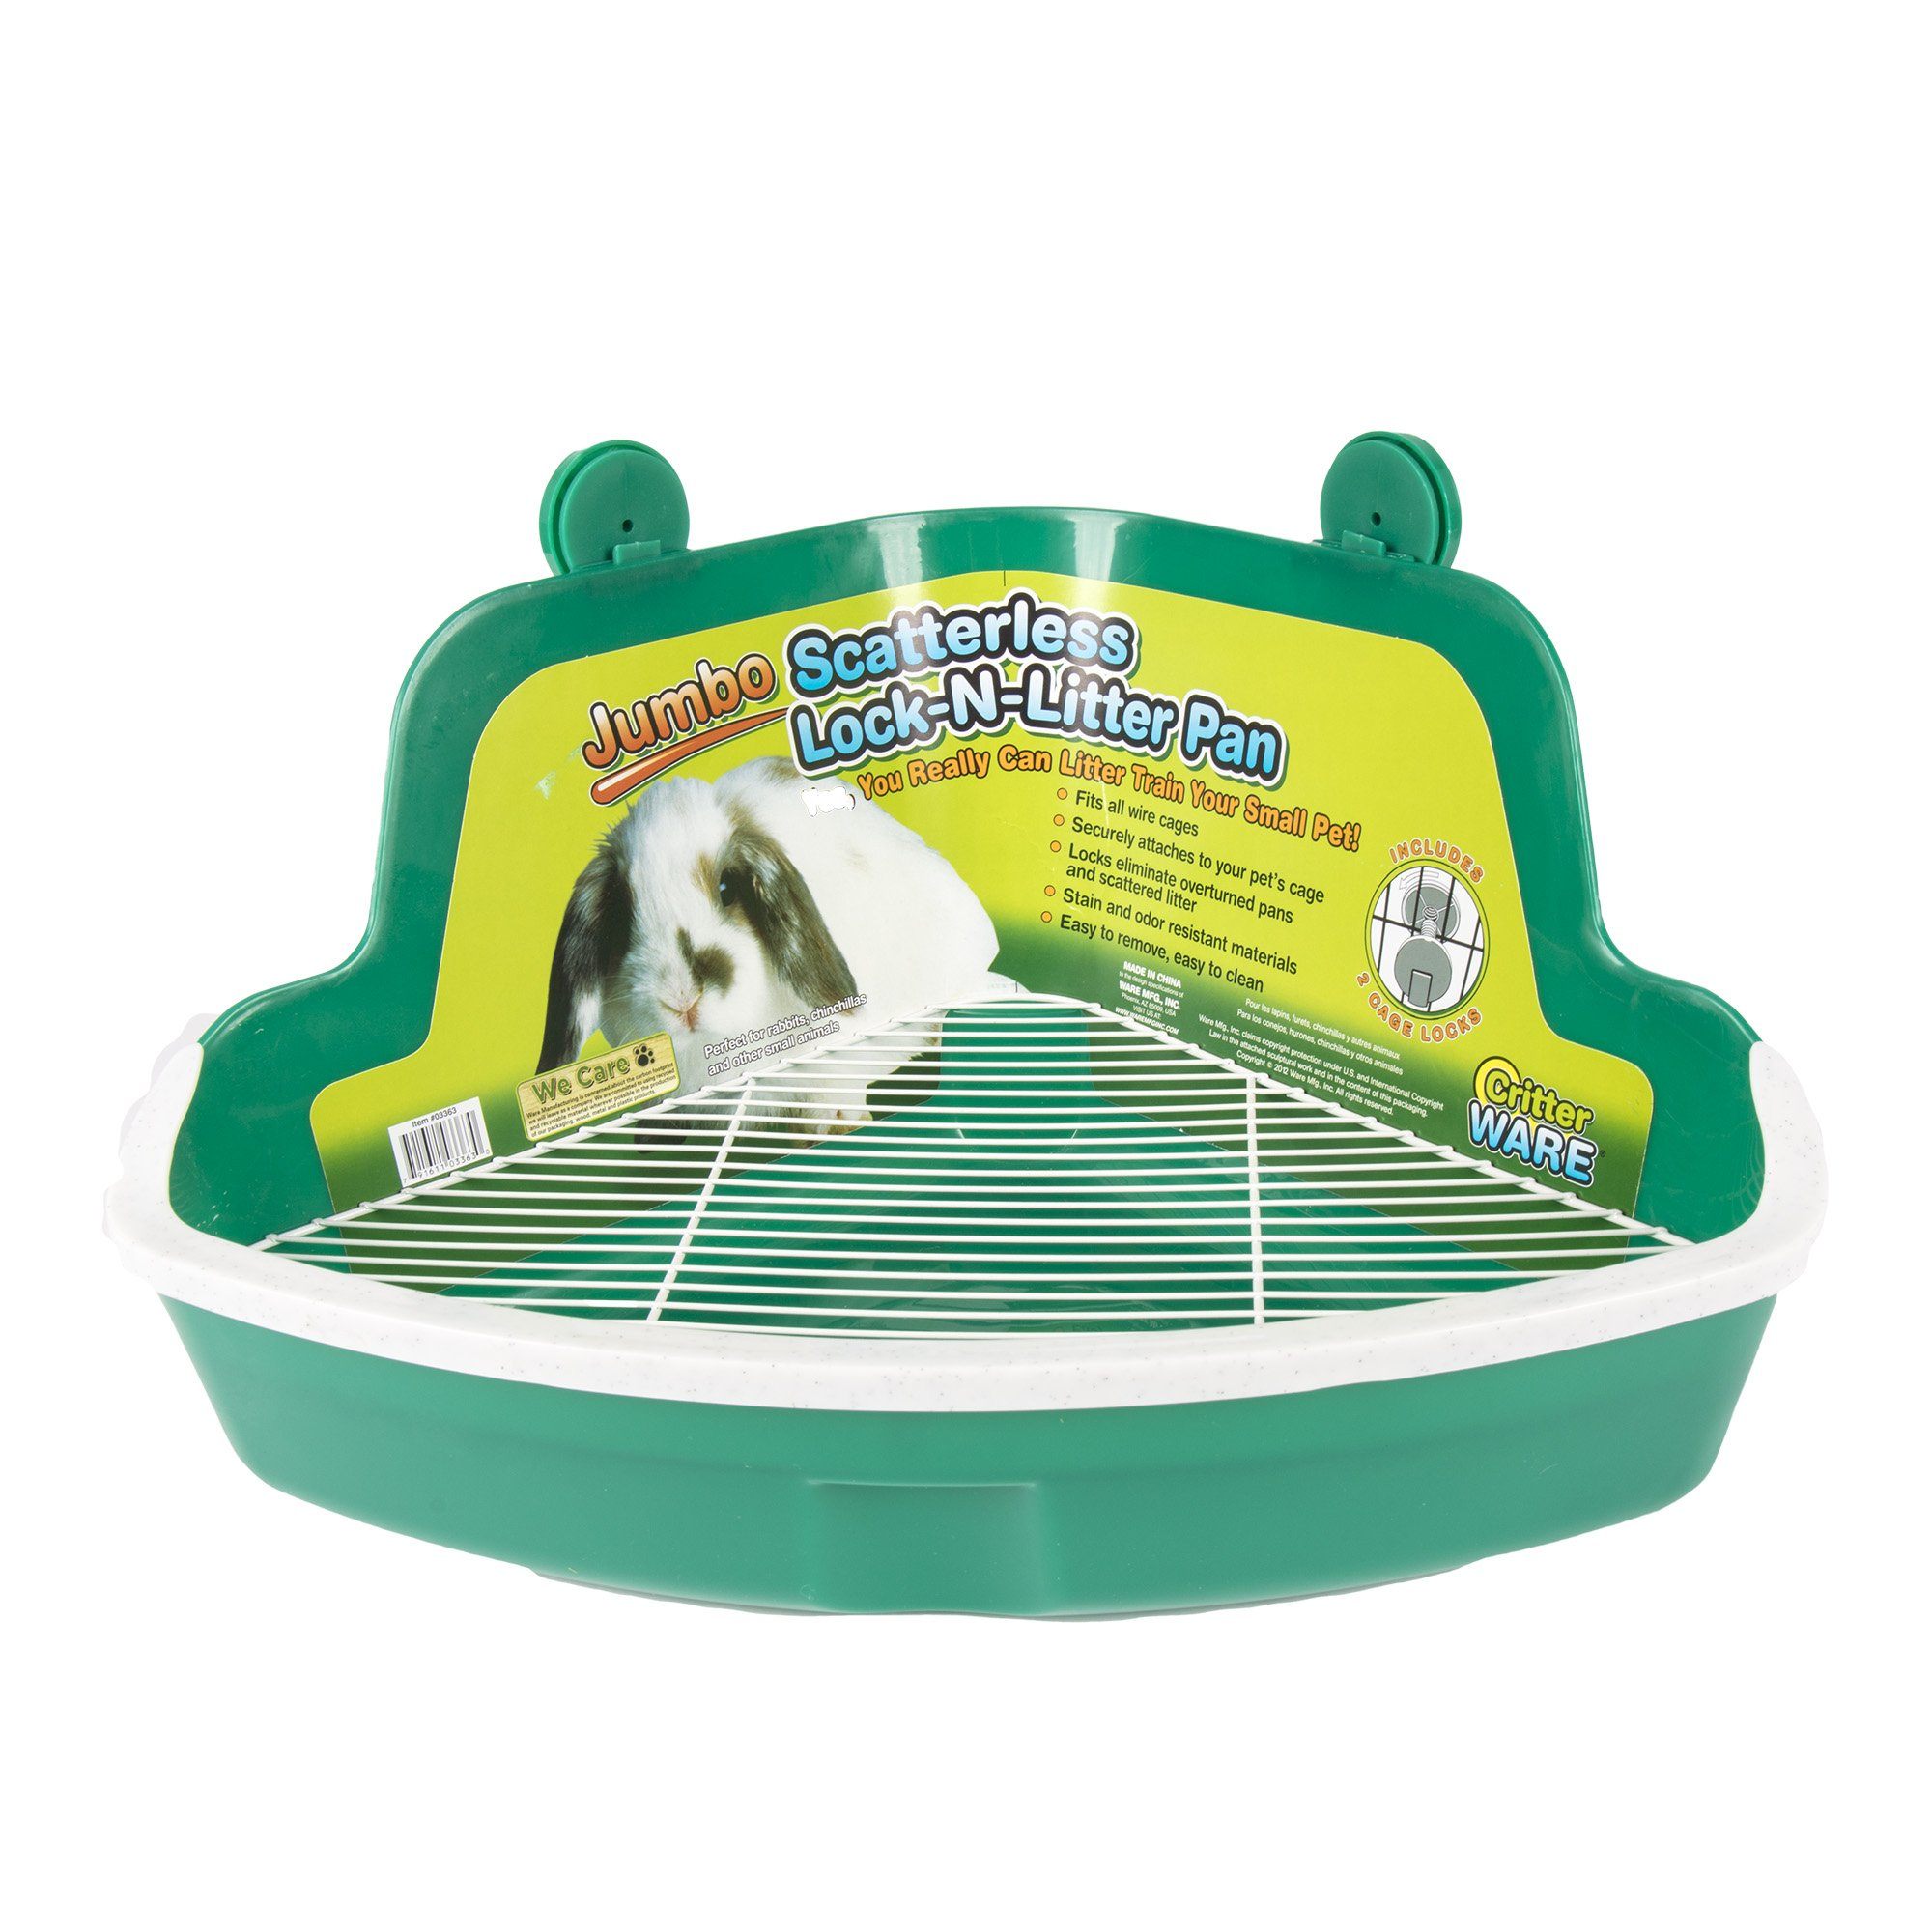 Ware Manufacturing Plastic Scatterless Lock-N-Litter Bigger Pet Pan, Jumbo - Colors May Vary by Ware Manufacturing